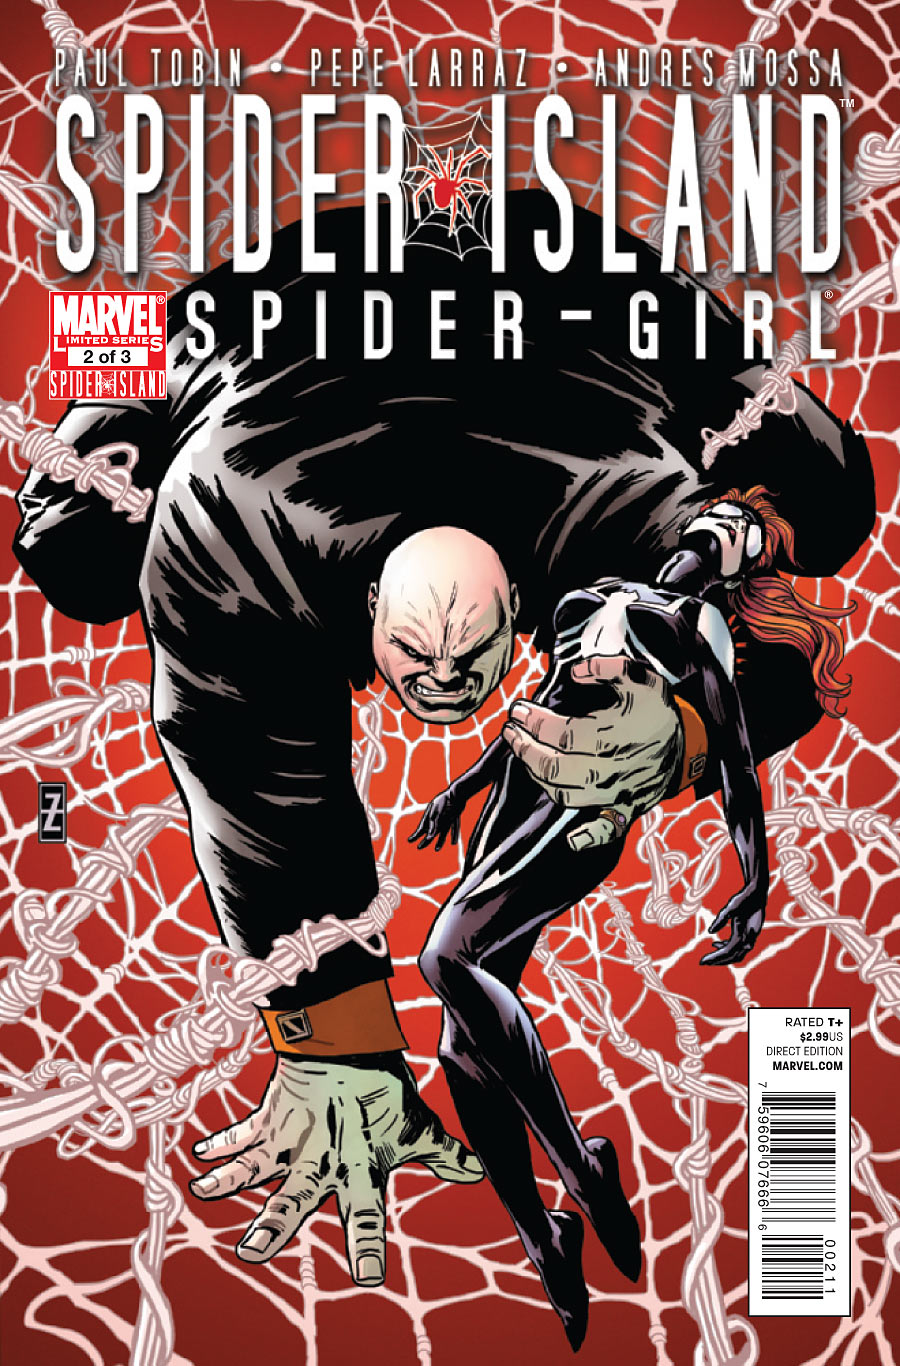 Spider-Island: The Amazing Spider-Girl Vol 1 2